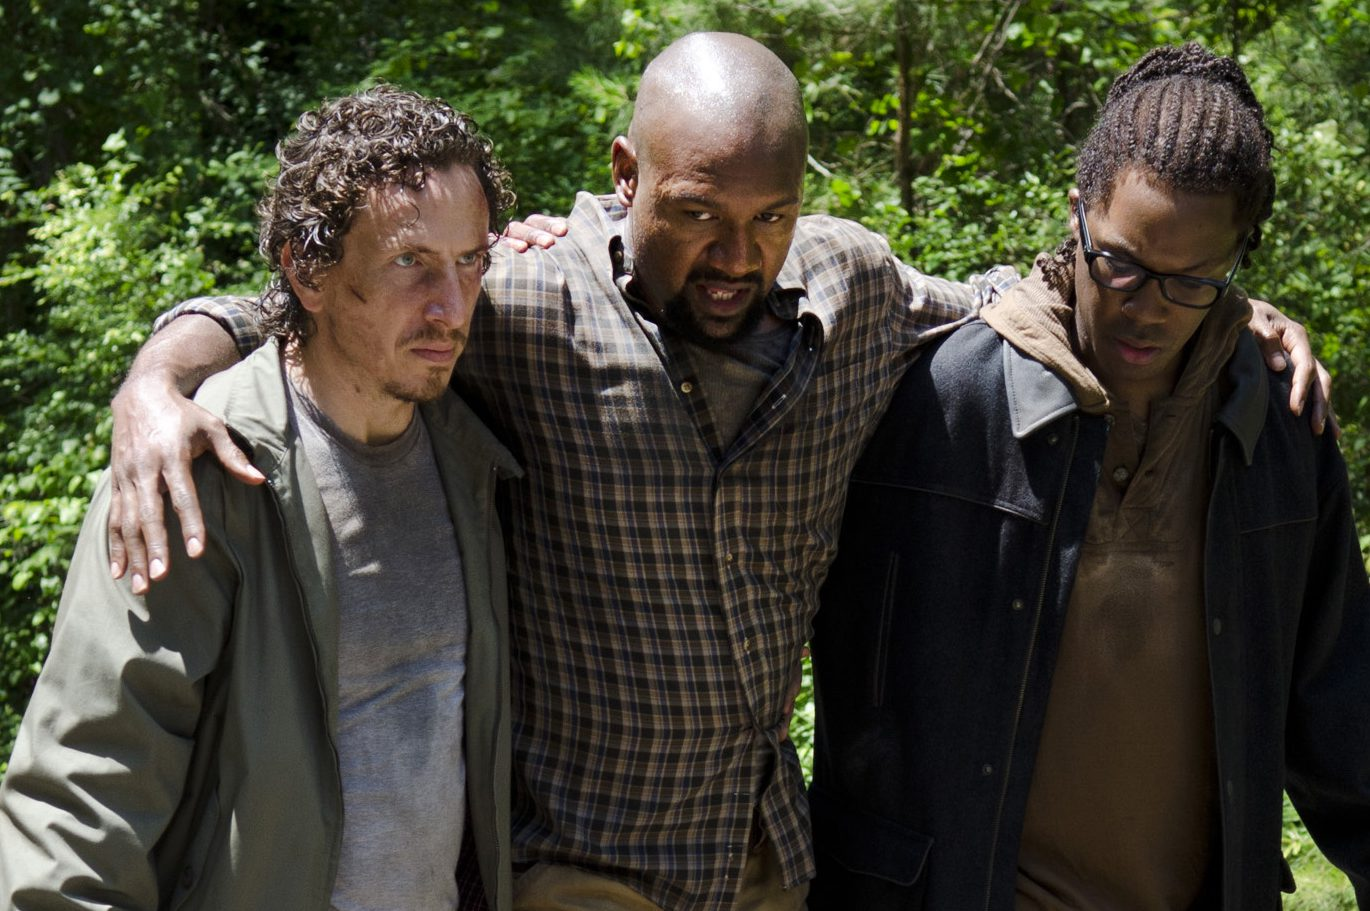 Michael Traynor as Nicholas, Kenric Green as Scott and Corey Hawkins as Heath